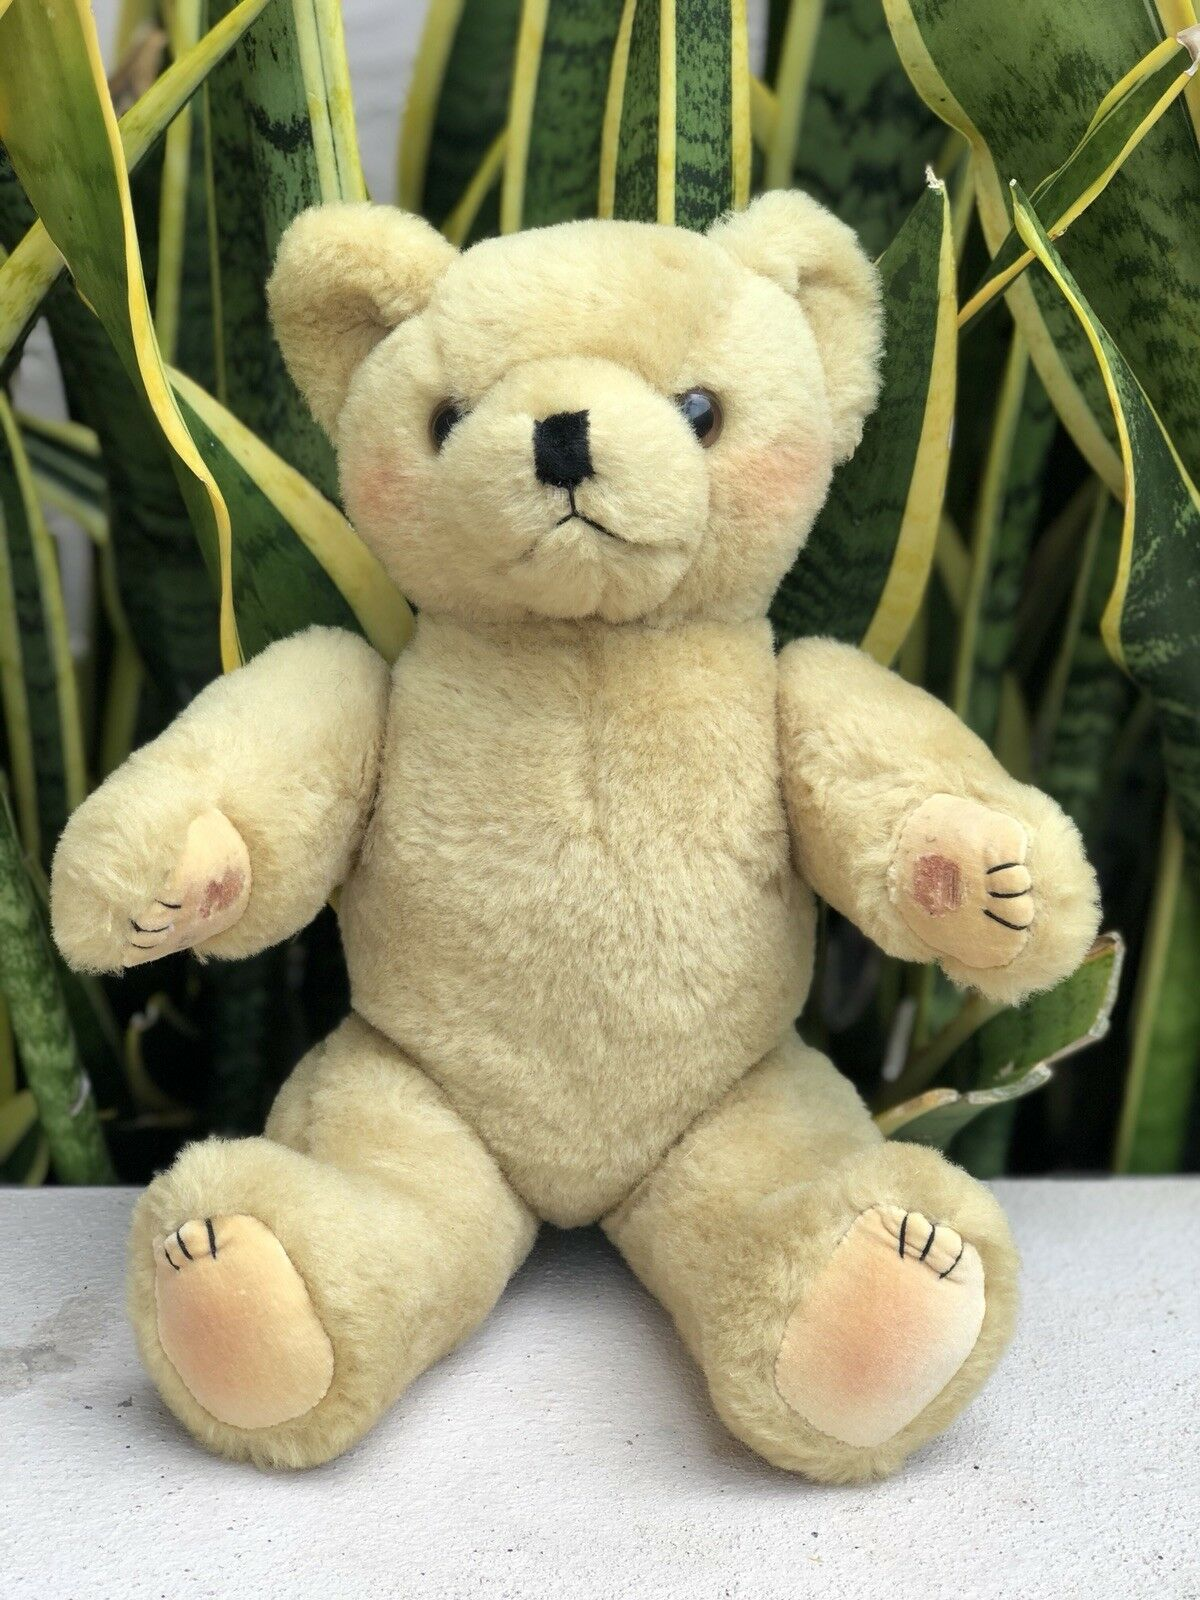 Vintage 50s 60s Blonde Light Brown Teddy Bear Jointed Stuffed Animal Plush Toy